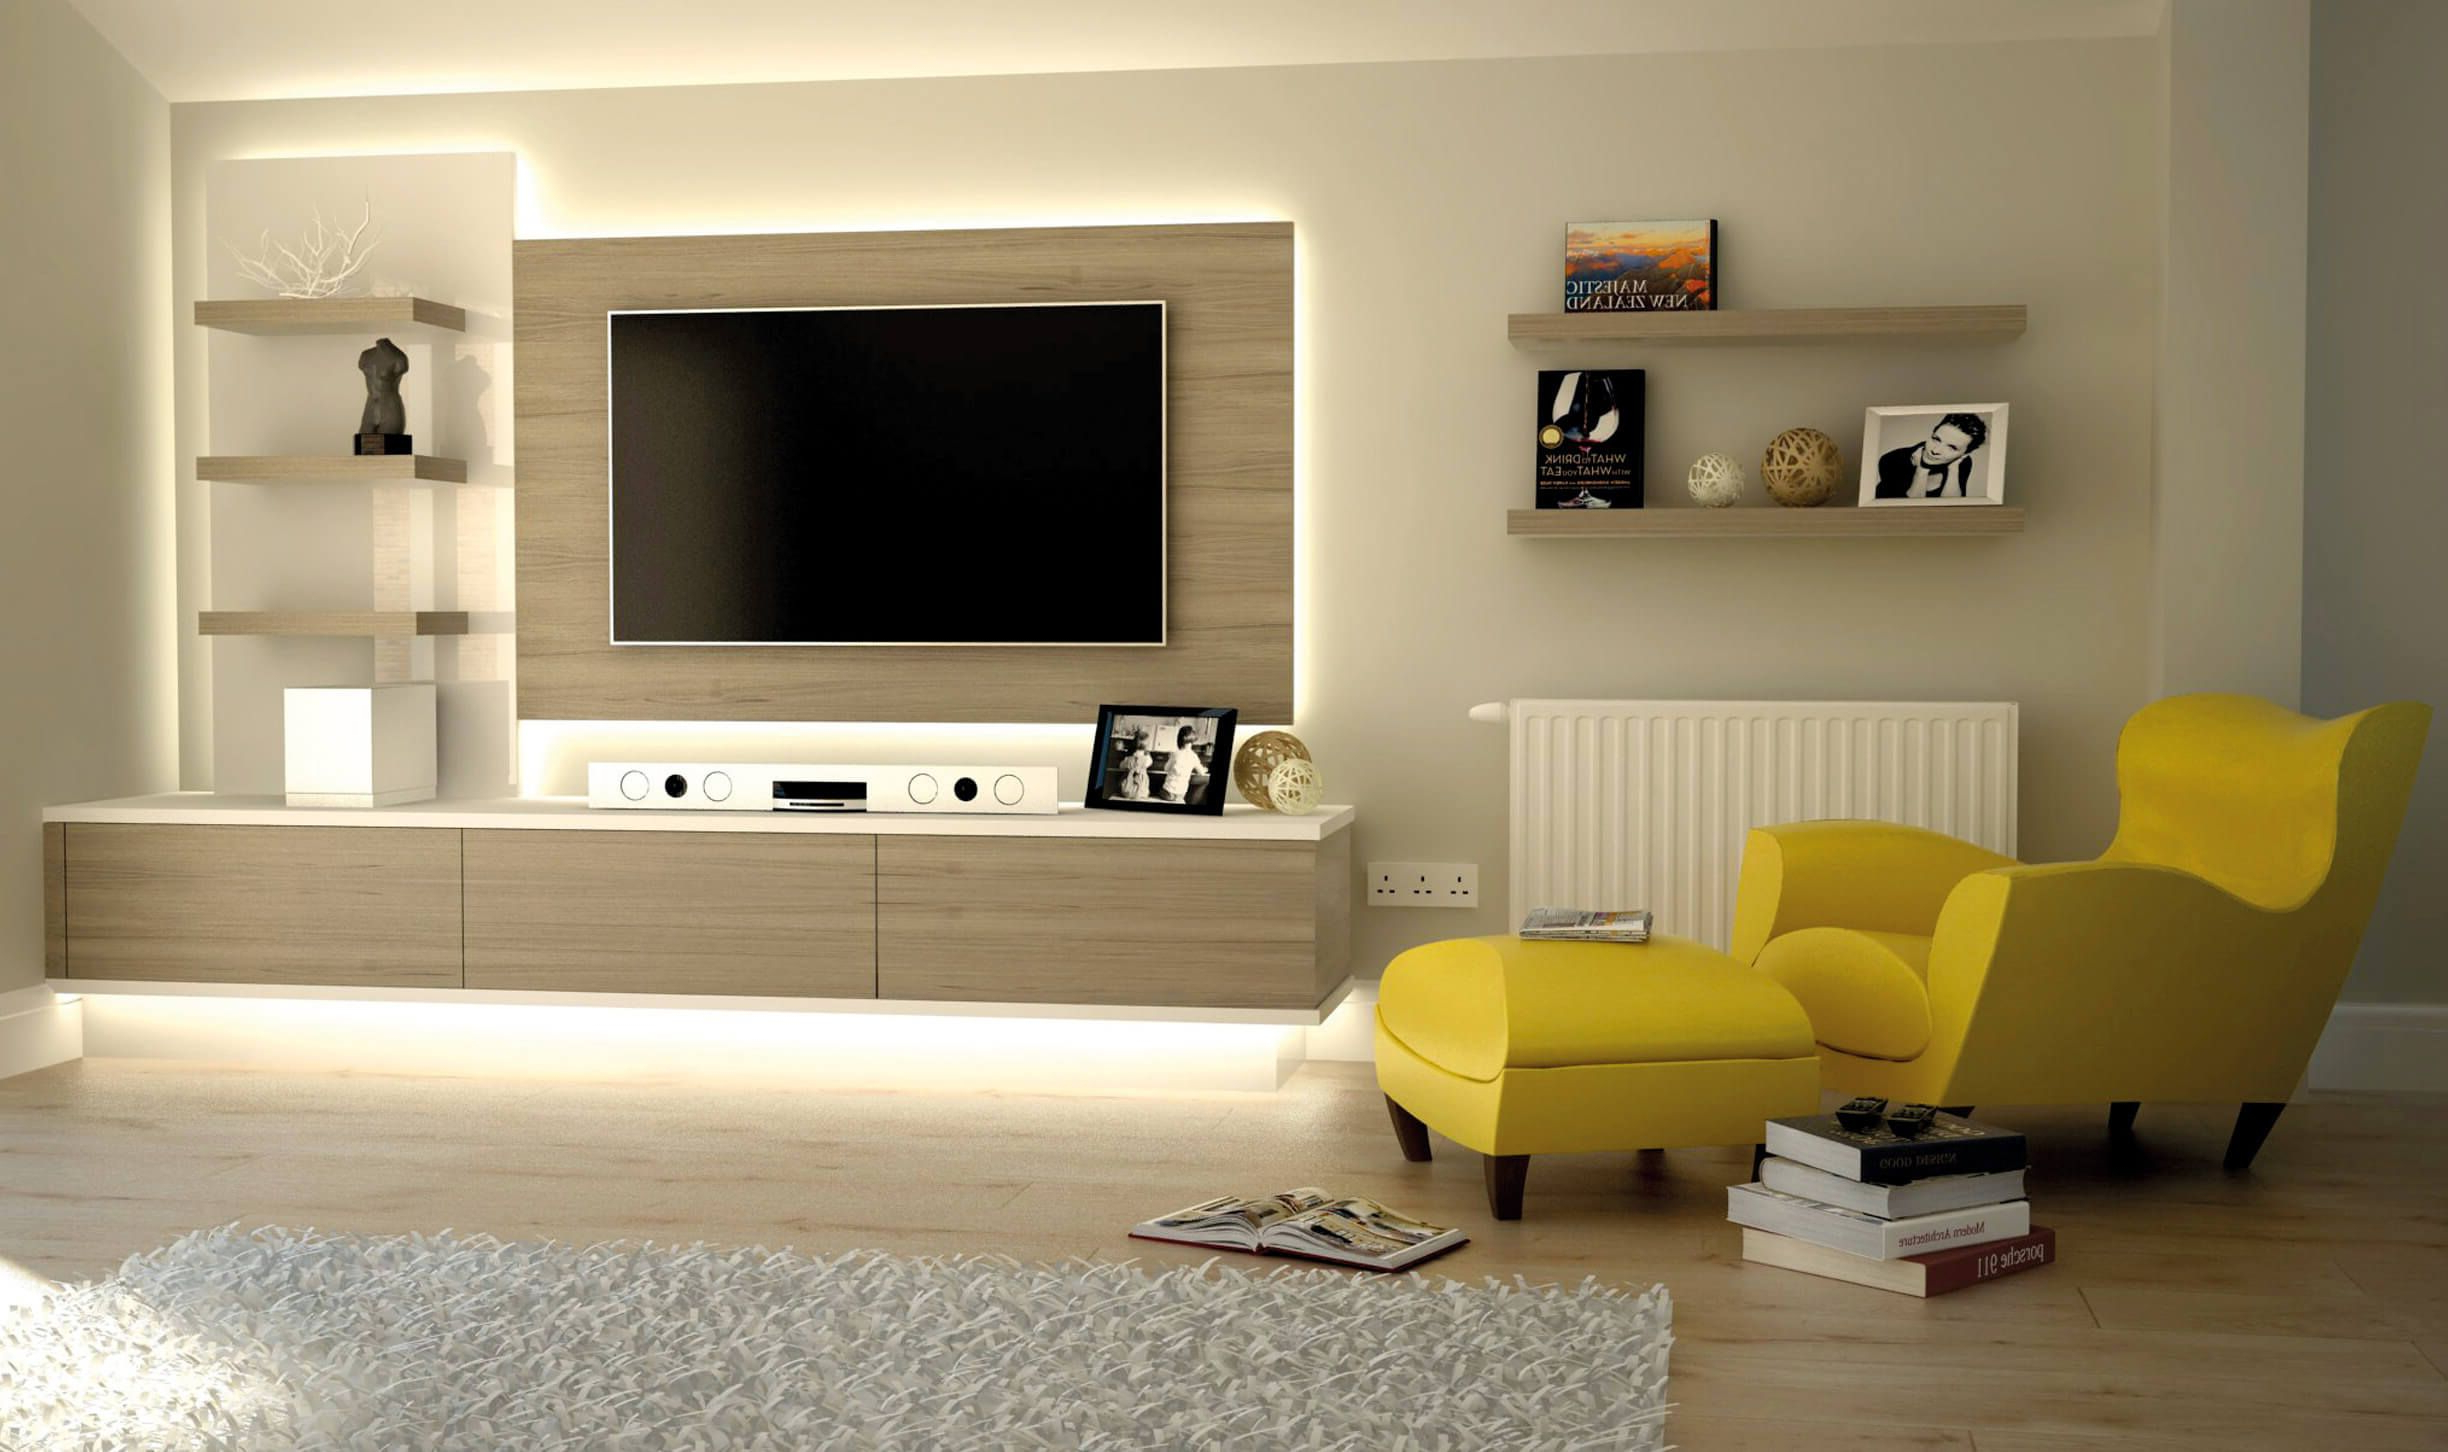 Tv Cabinets In 2017 Bespoke Tv Cabinets, Bookcases And Storage Units (View 20 of 20)